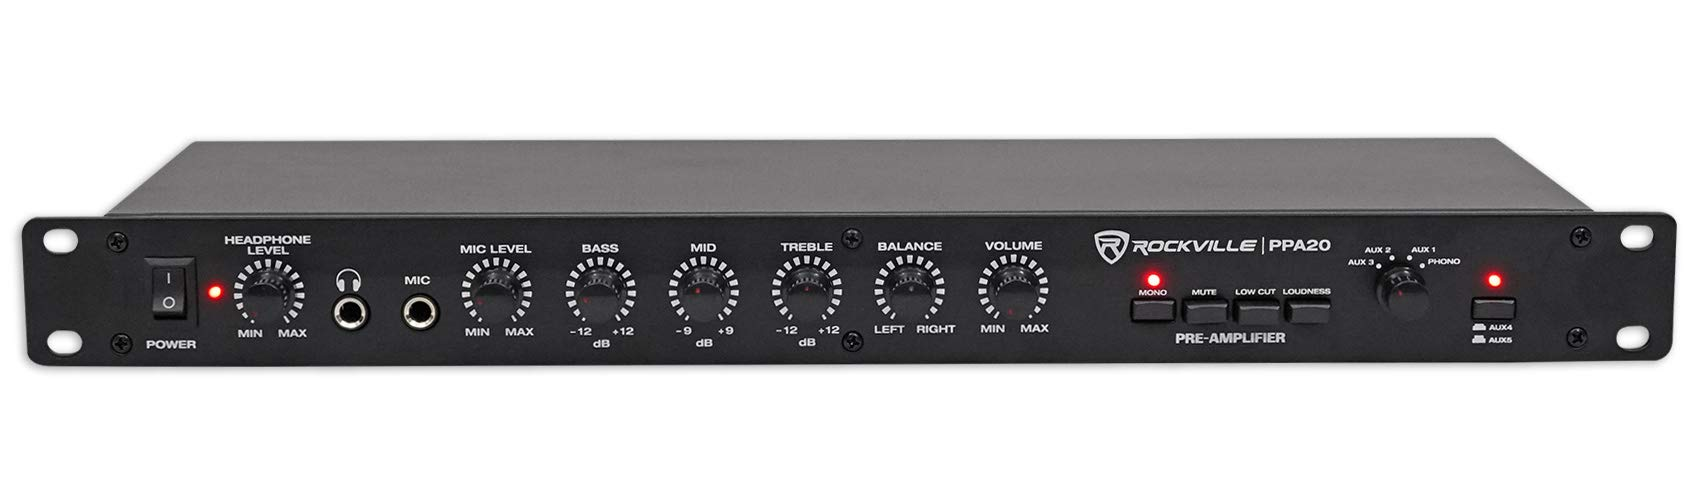 Rockville PPA20 Home Audio Preamp Pre-Amplifier w/Crossover+EQ by Rockville